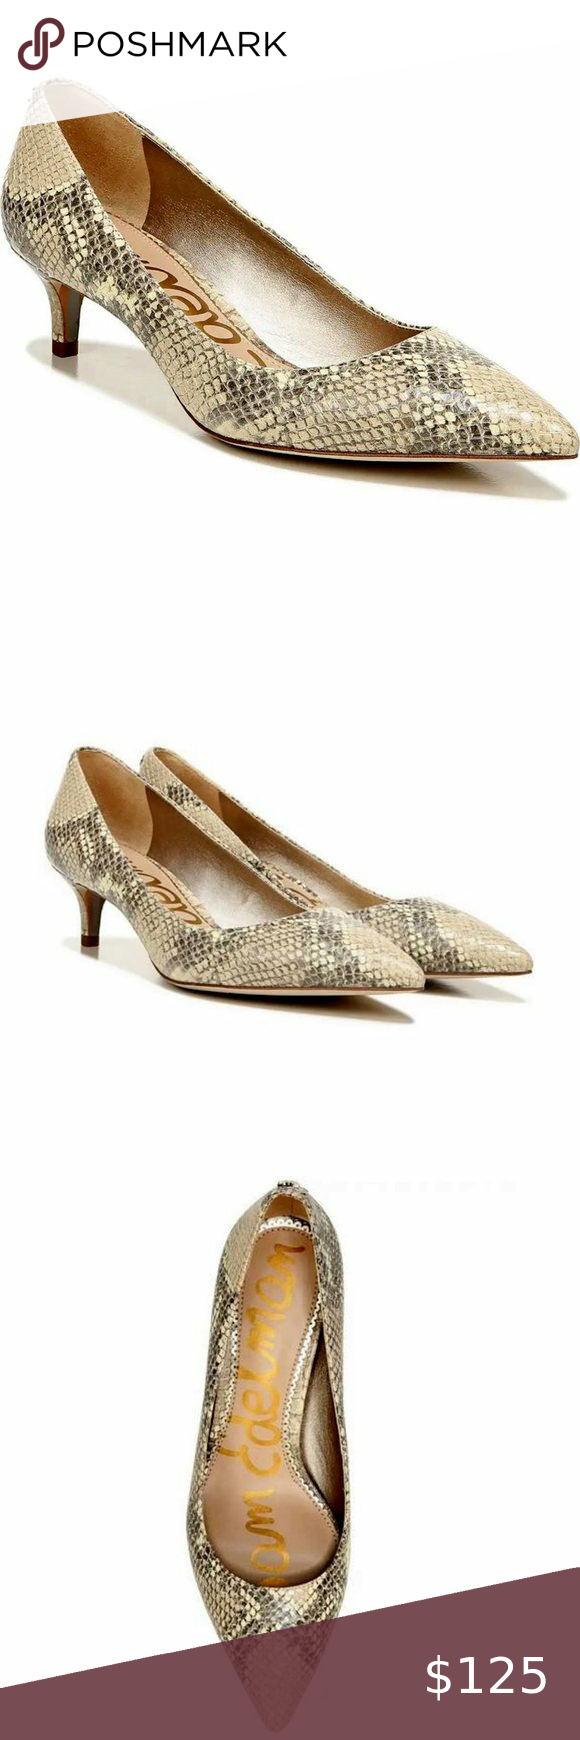 Sam Edelman Dori Kitten Heel Pumps In Snake Print In 2020 Pumps Heels Kitten Heels Kitten Heel Pumps